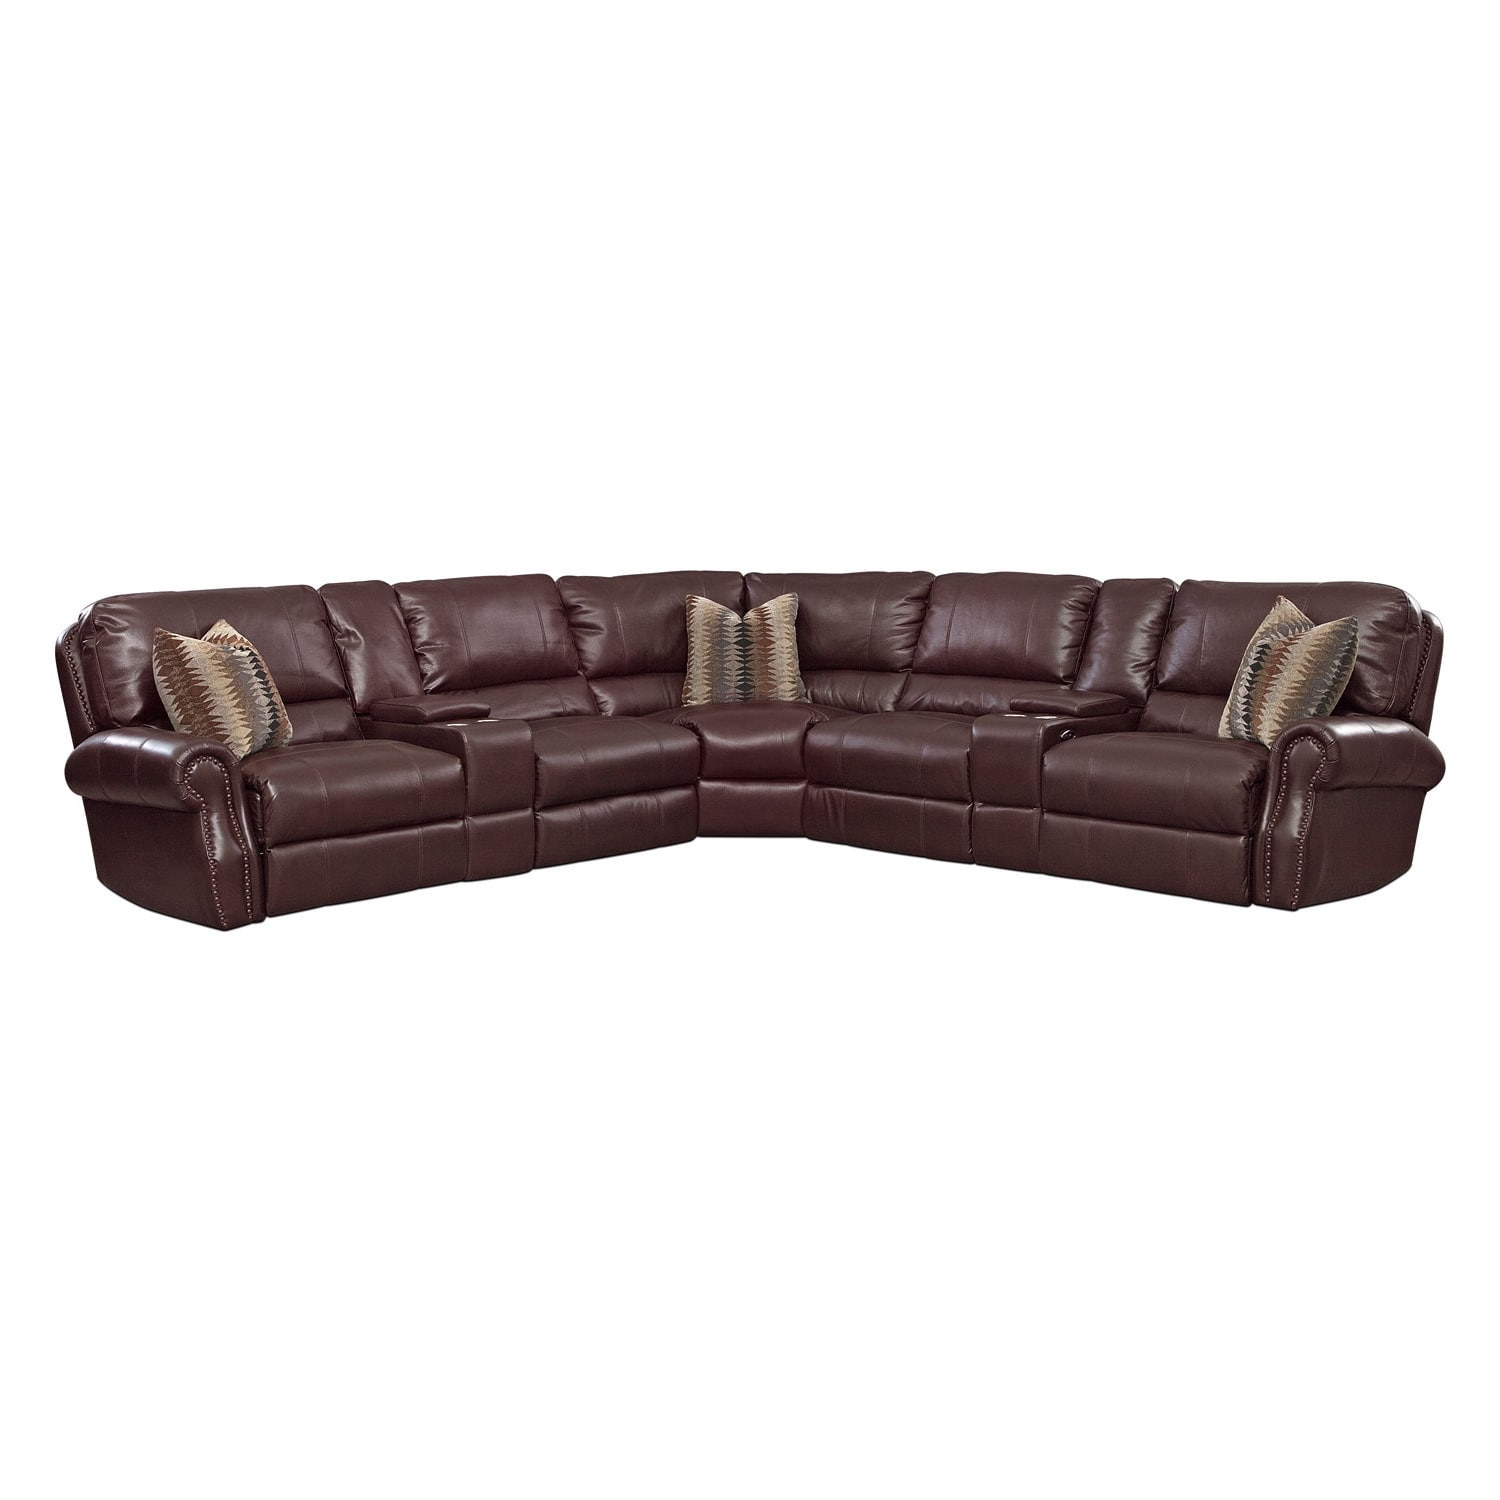 Living Room Furniture - Princeton 5 Pc. Power Reclining Sectional (Alternate Reverse